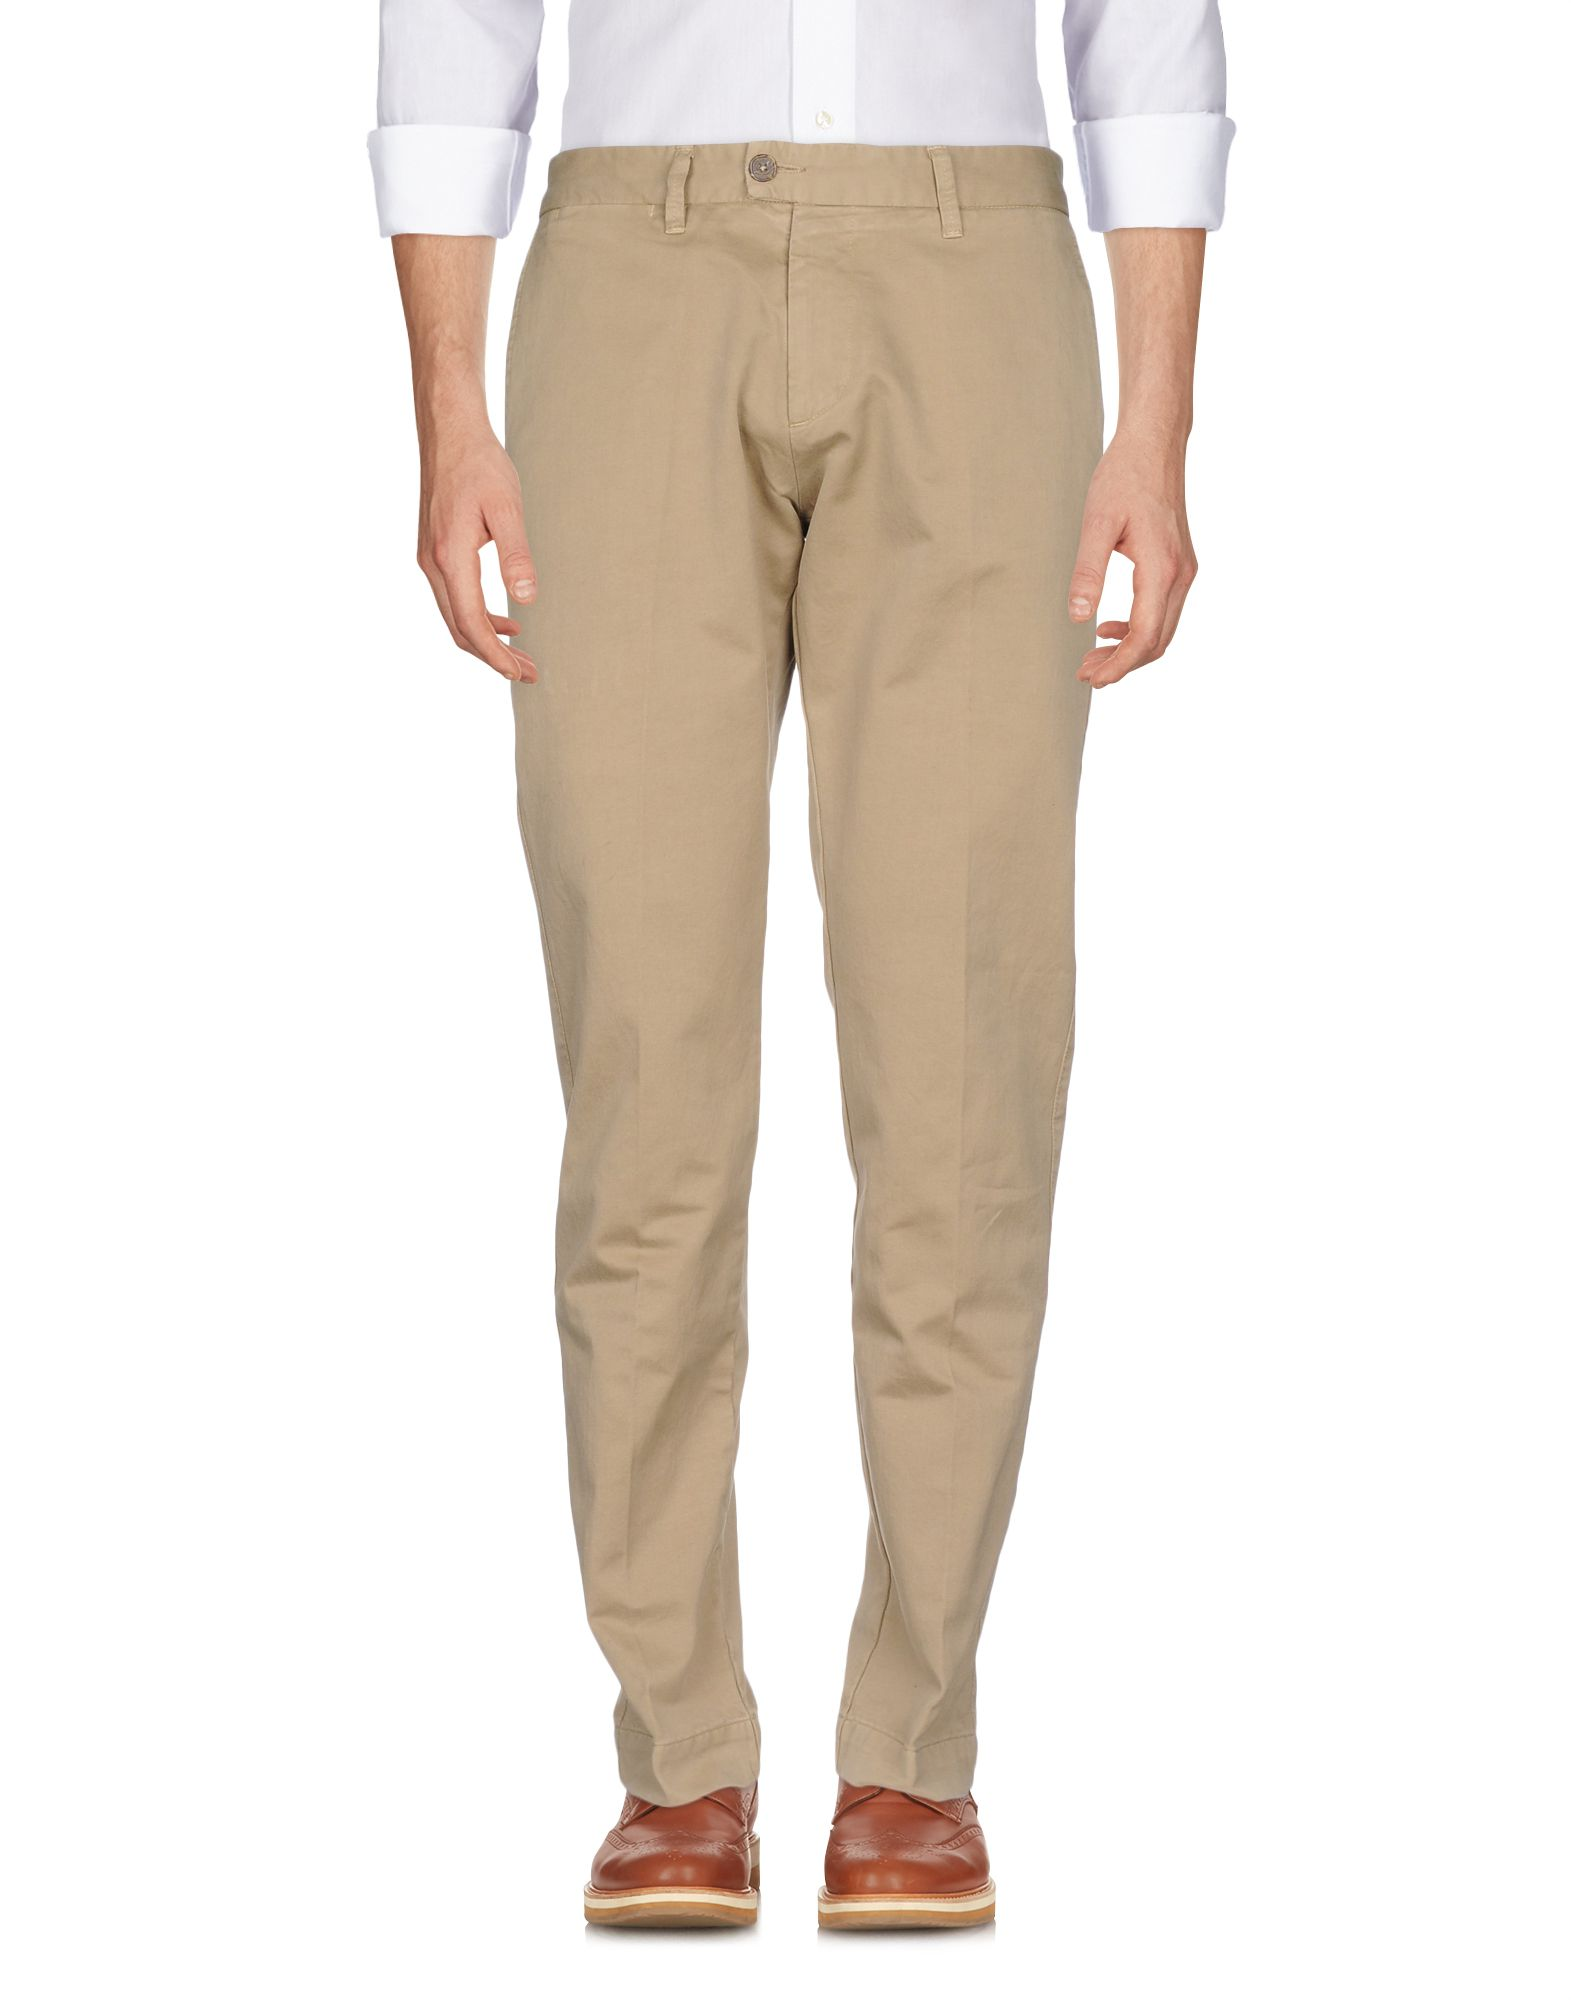 ITALIA INDEPENDENT Casual Pants in Sand